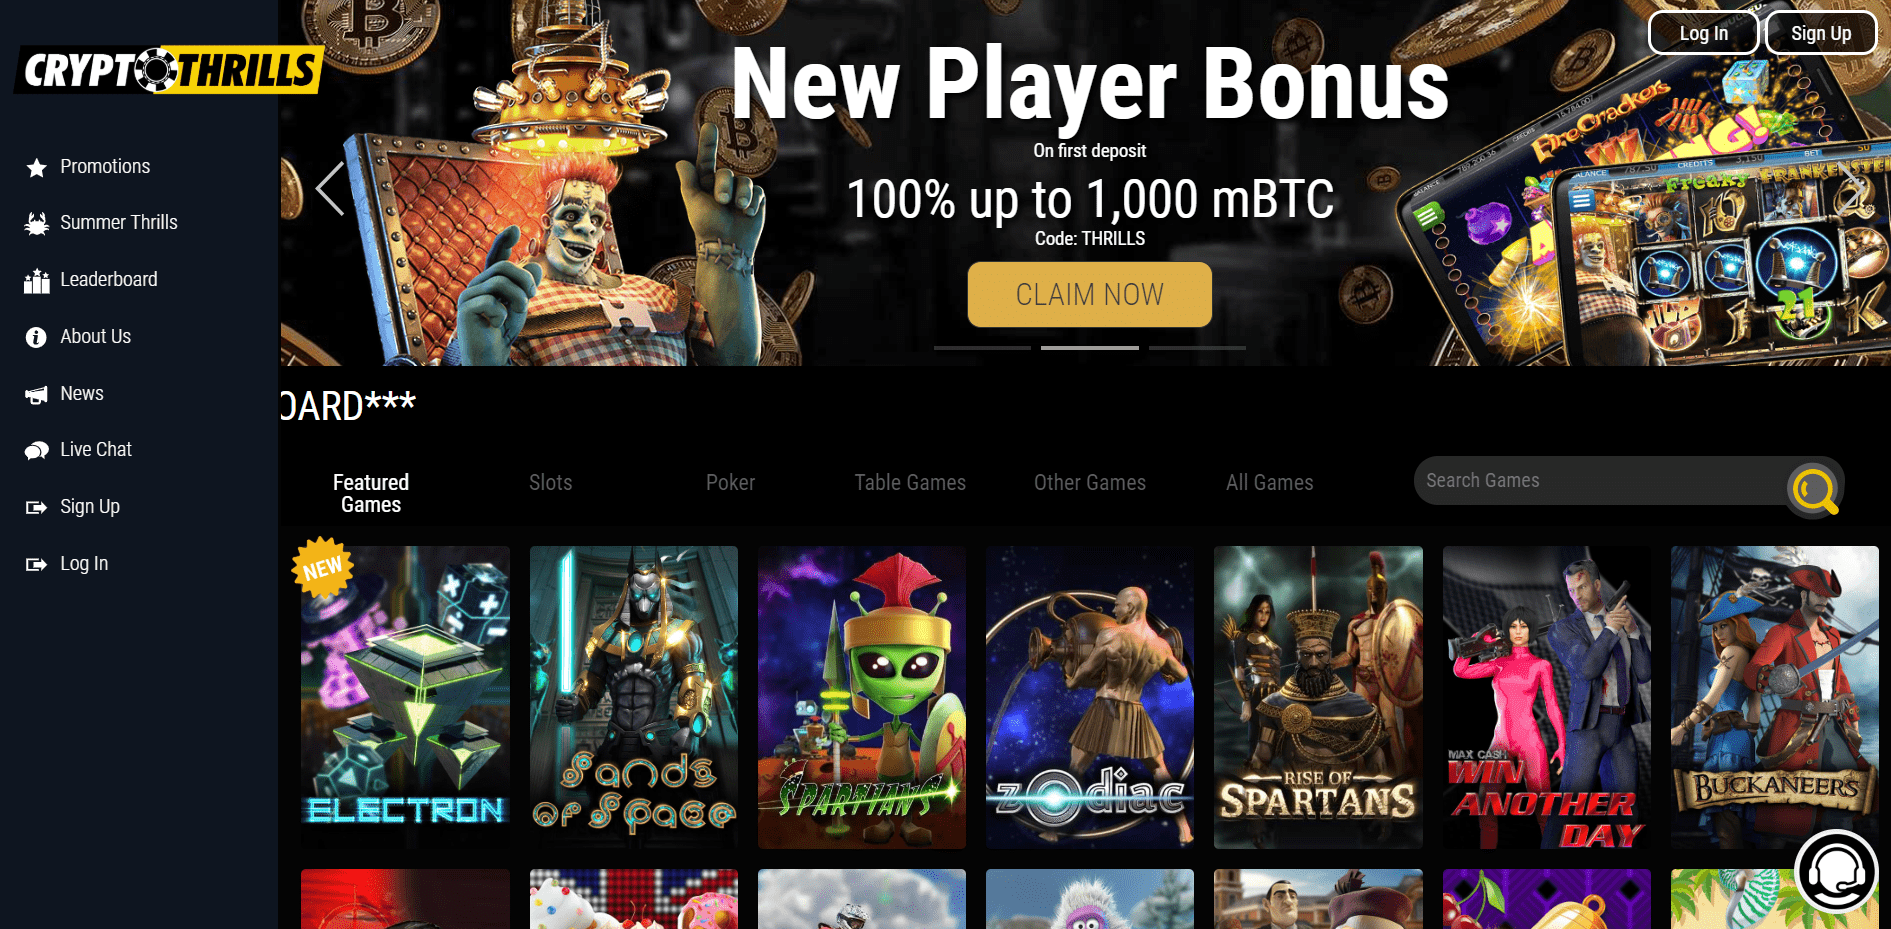 Crypto Thrills Promo Codes – CryptoThrills.io Free Spins August 2020